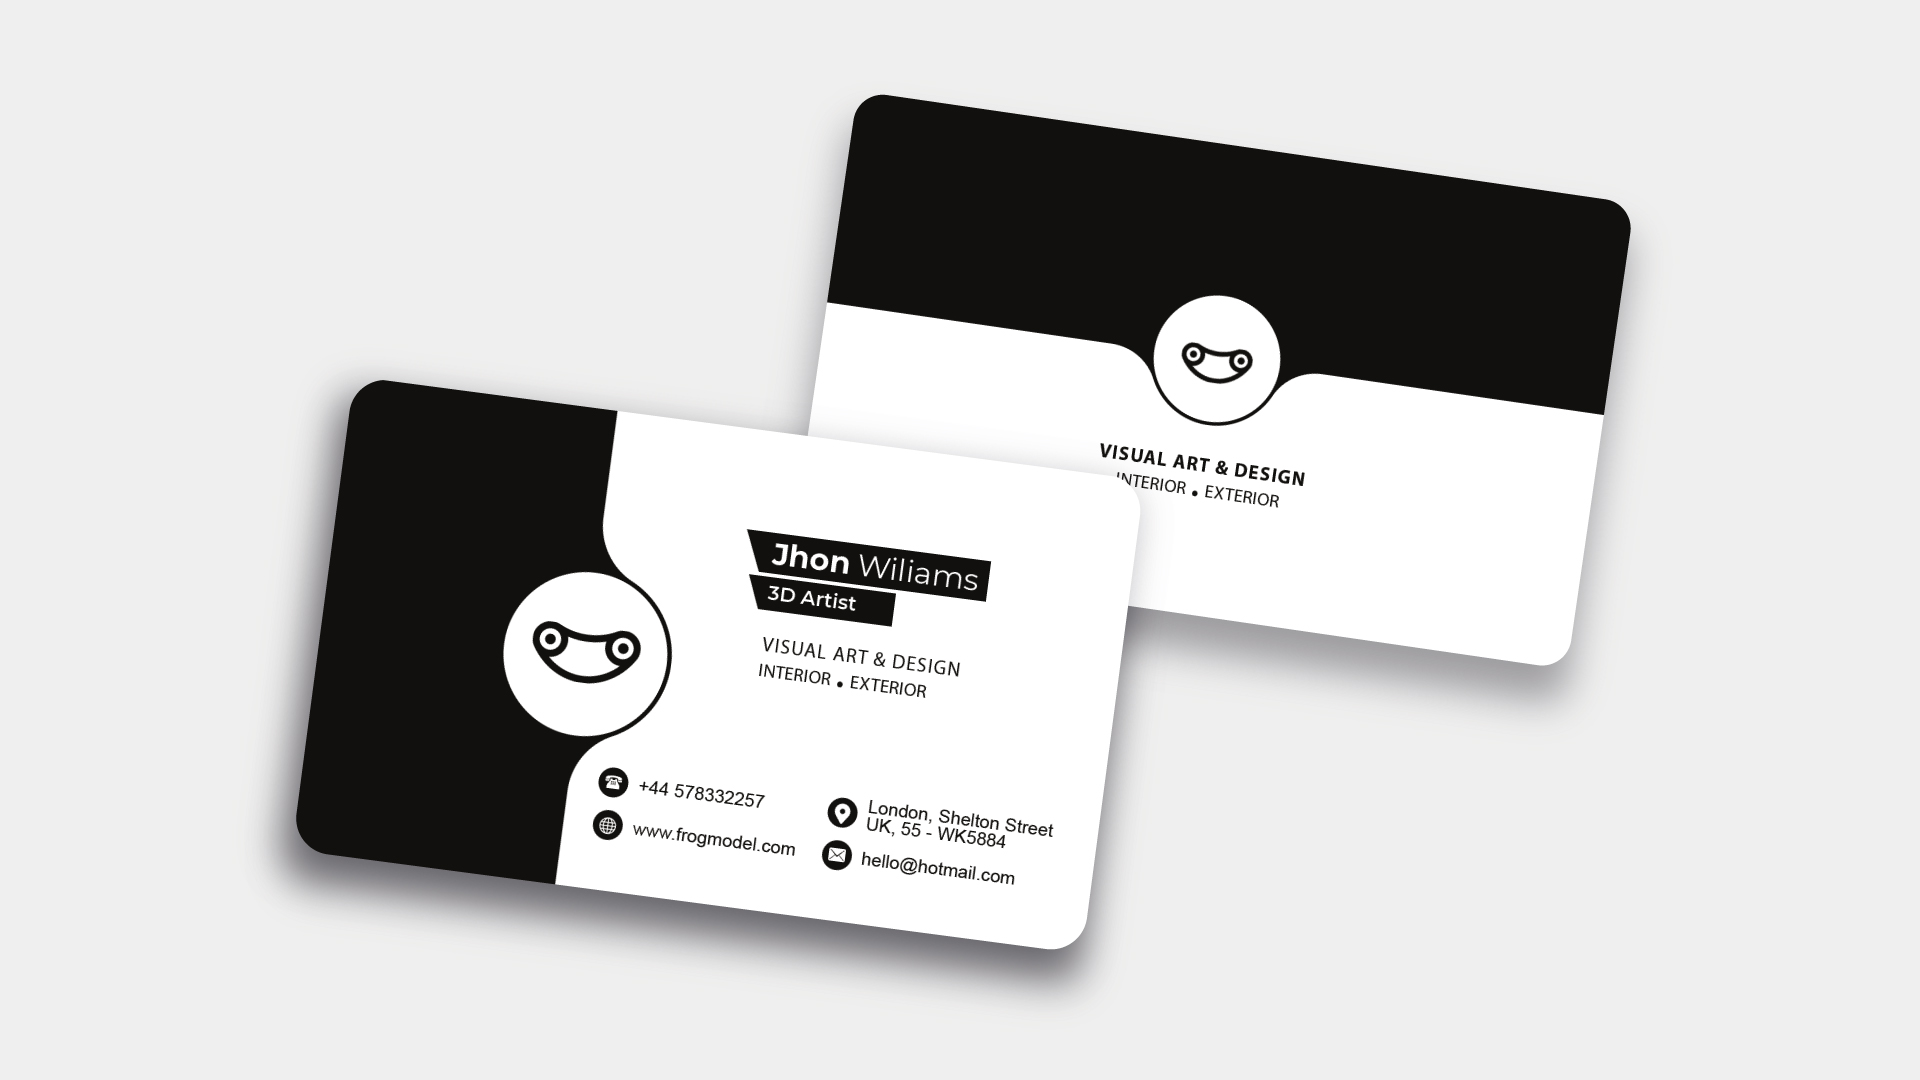 Black and White Business Card Templates & Design from FrogModel